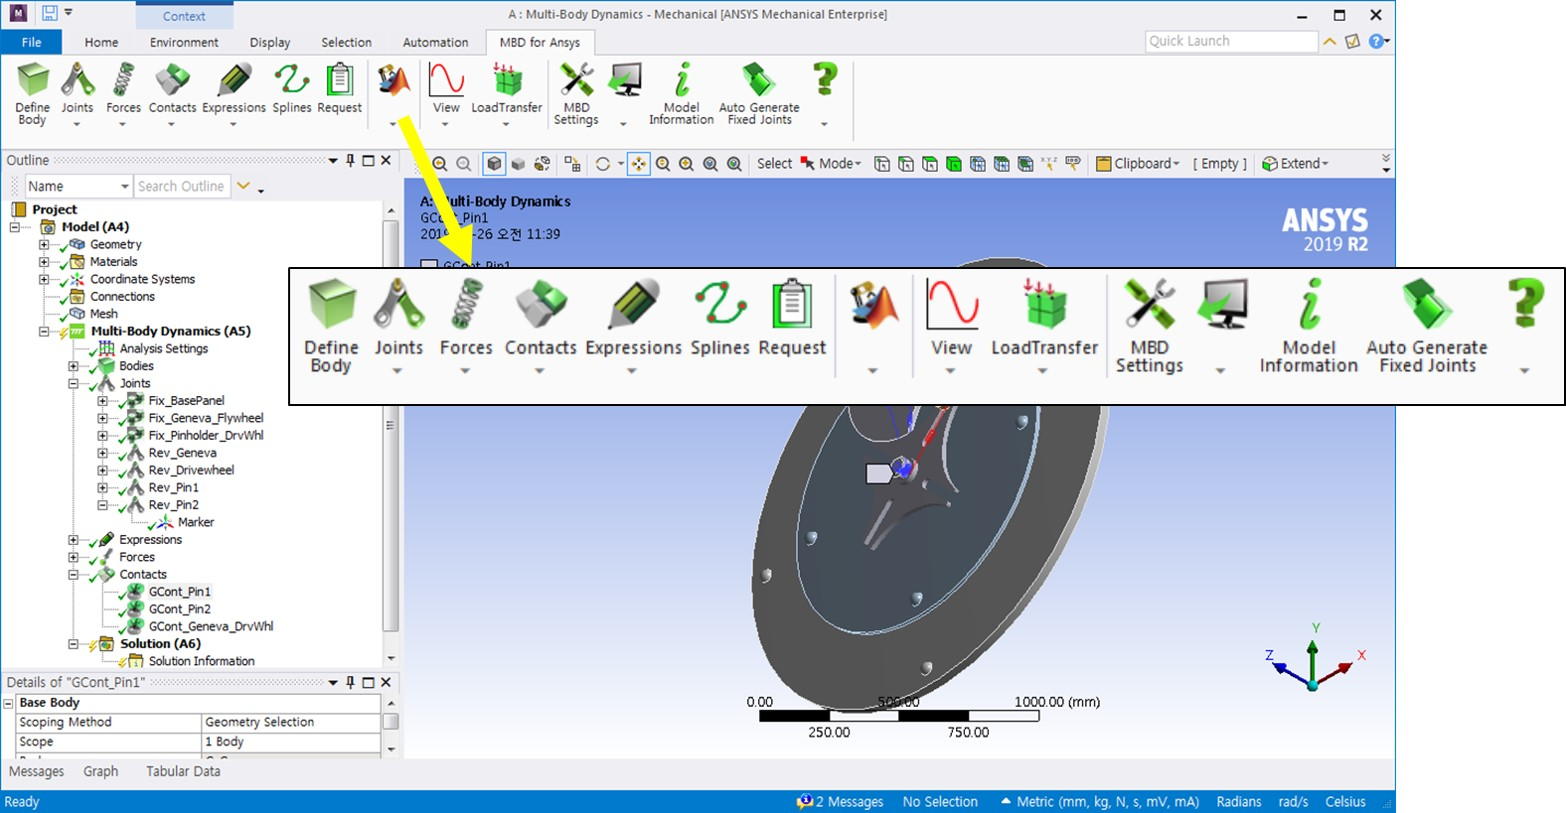 MBD for ANSYS - motion analysis tool - 2019 R2